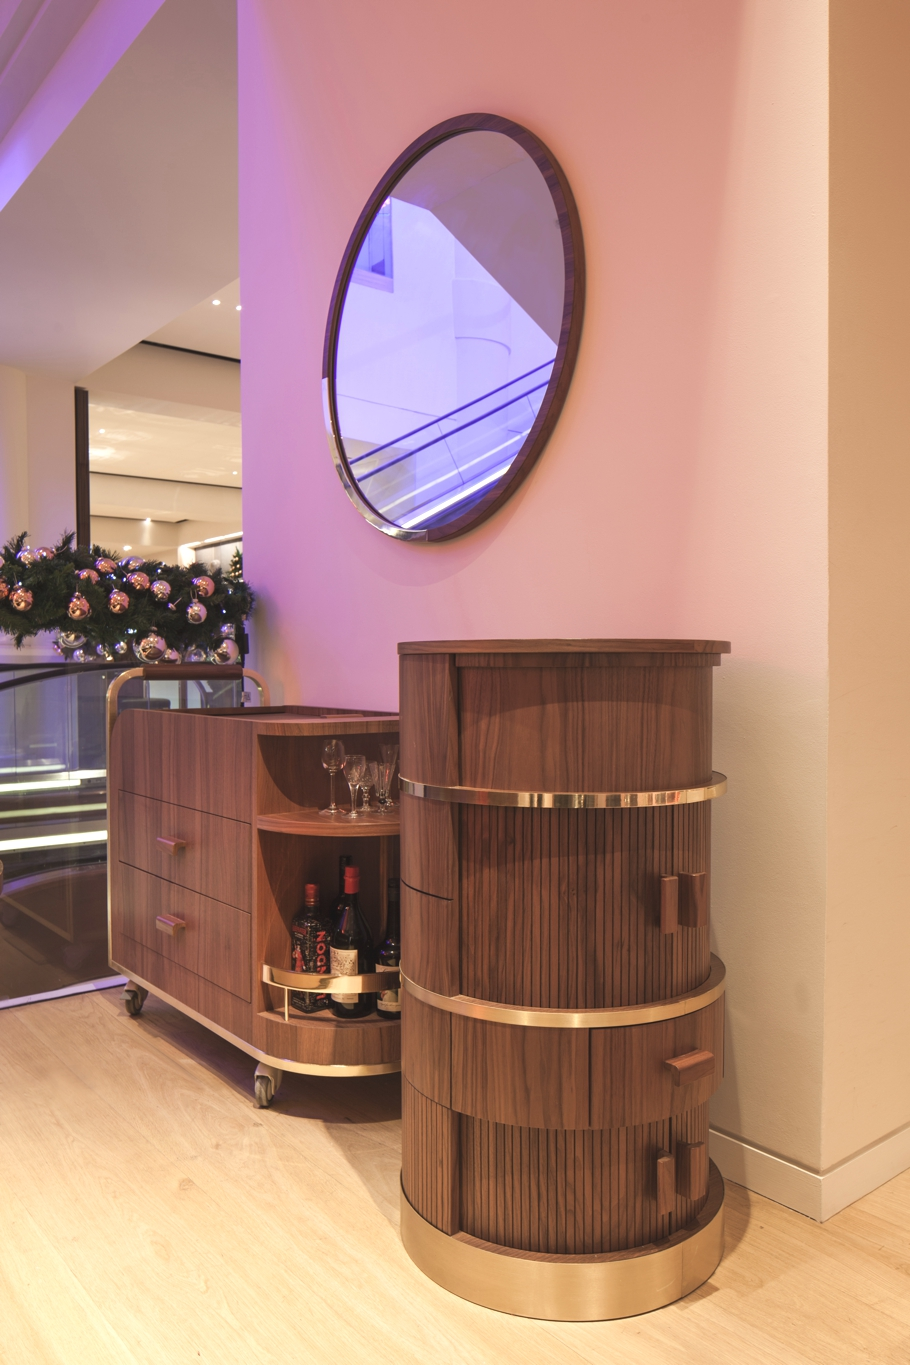 Marks-Bar-Selfridges-Designed-by-Lee-Broom-Adelto-04